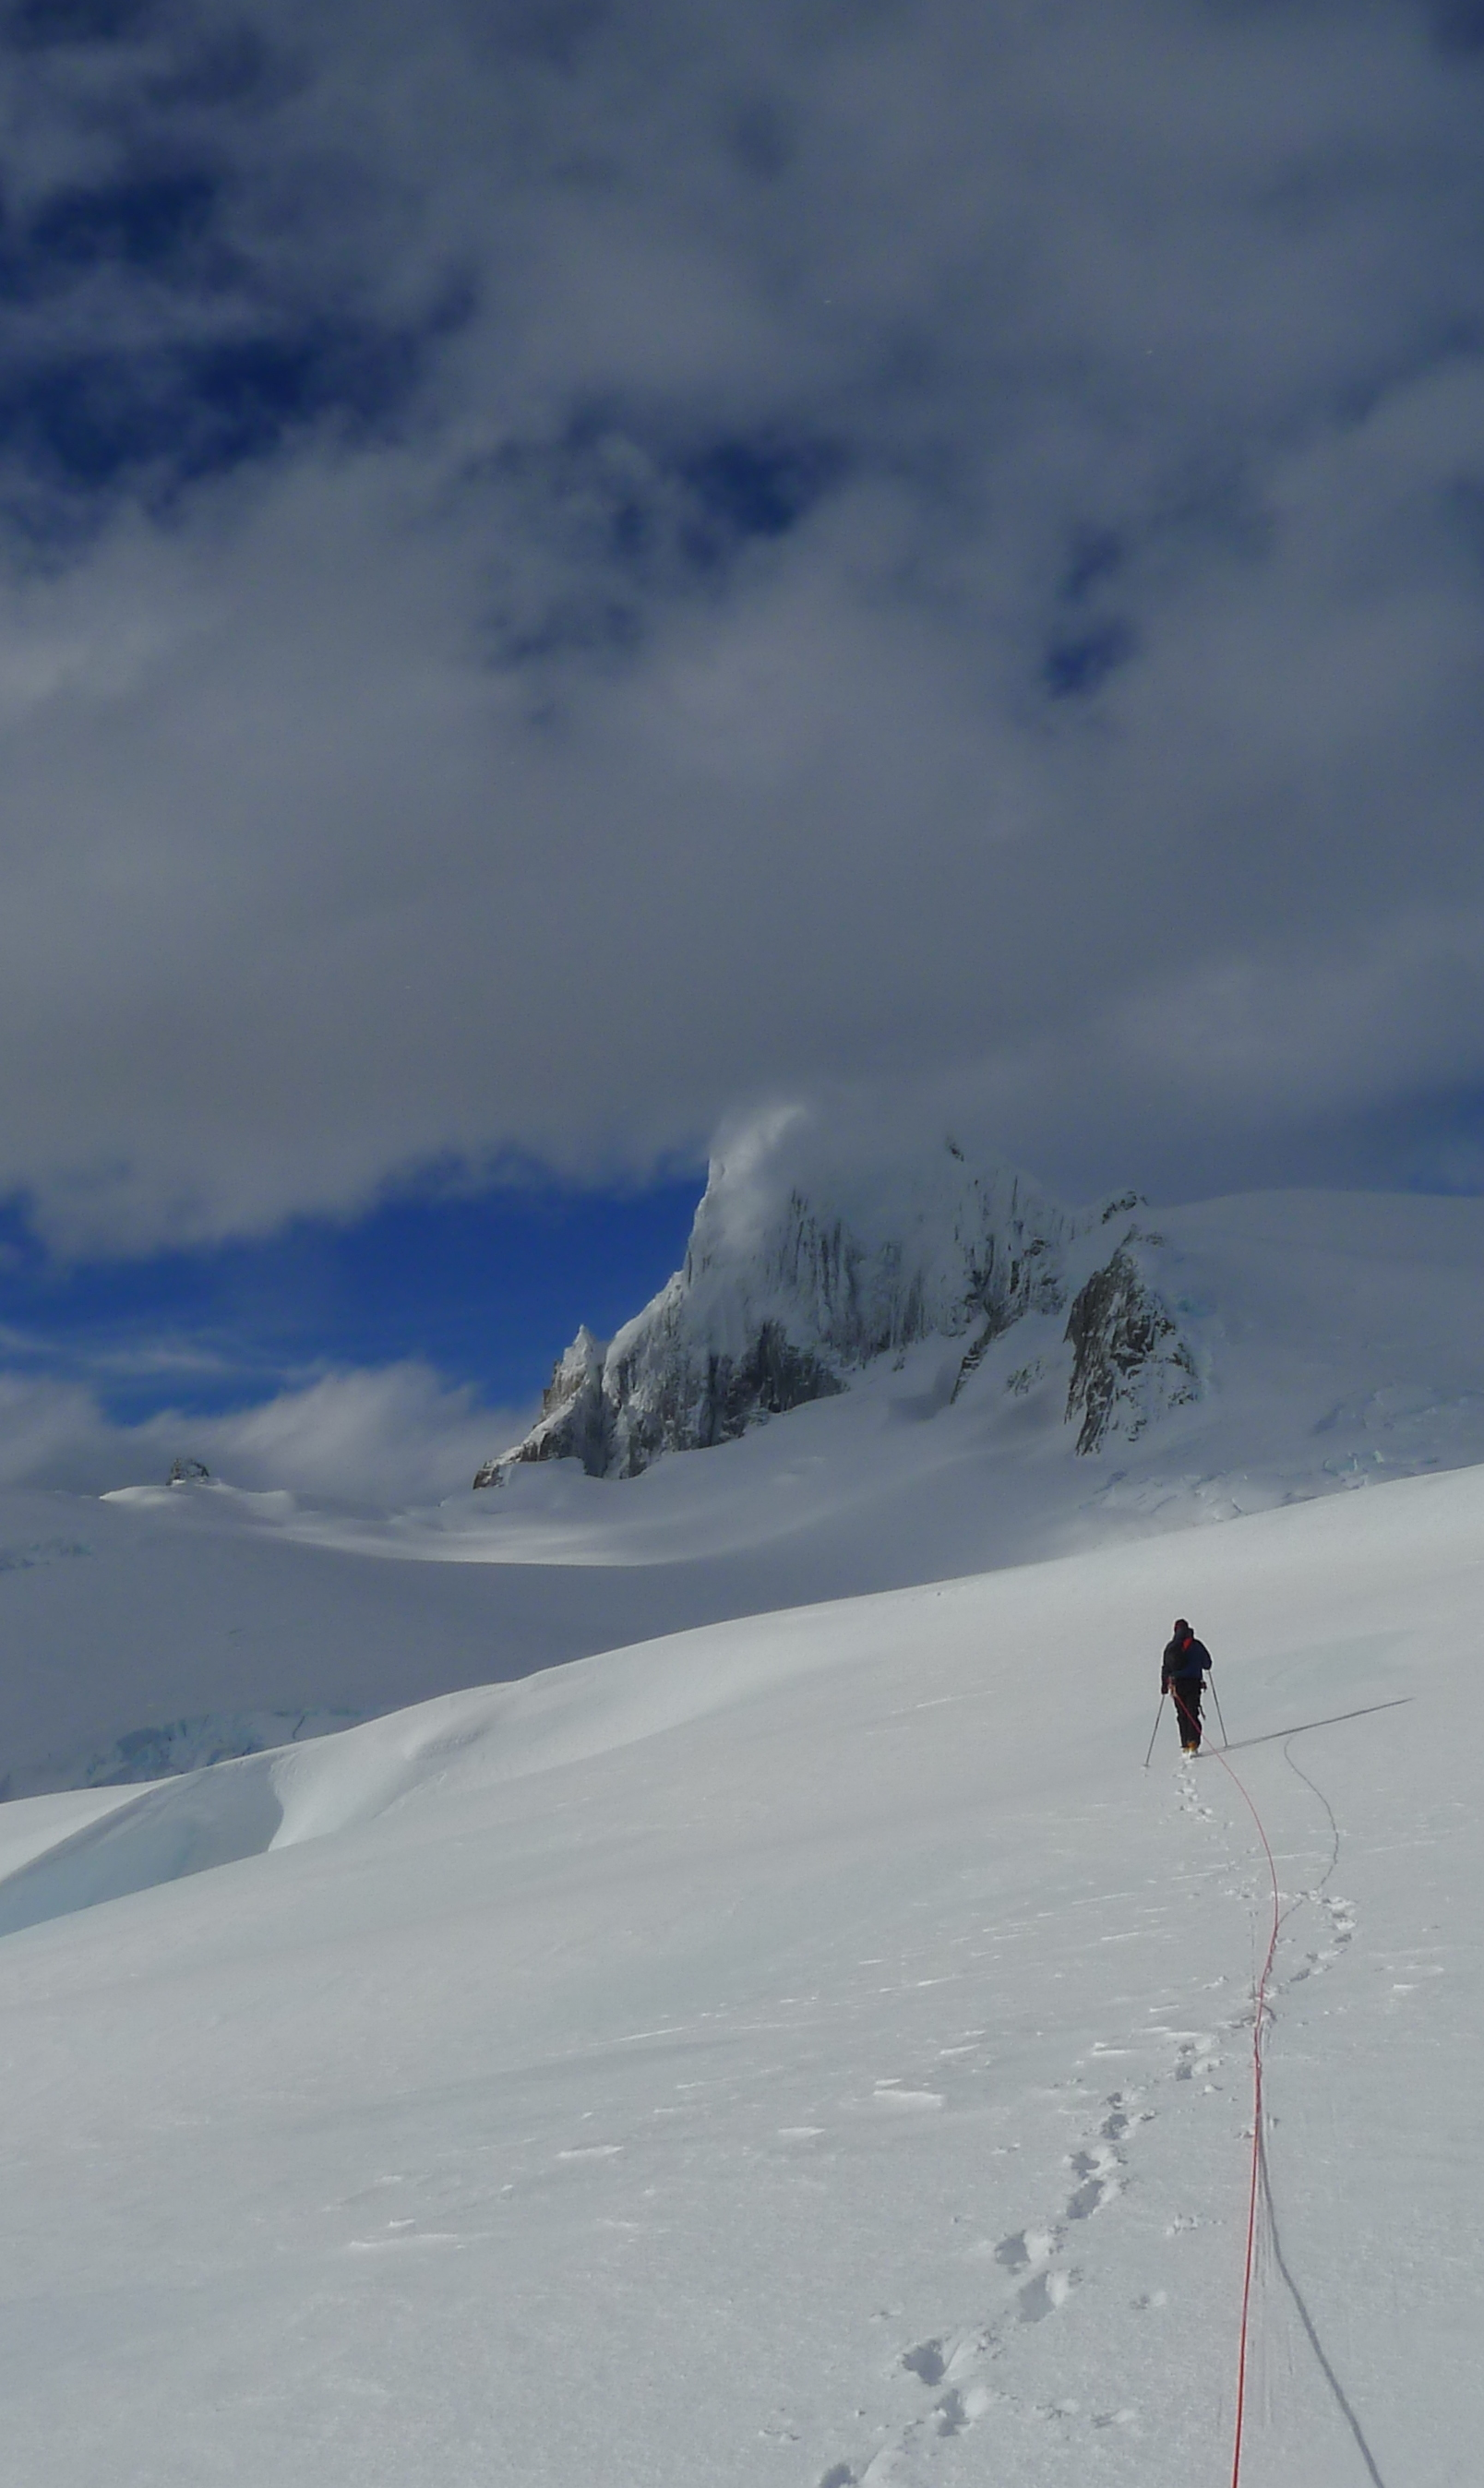 Approaching Riso Patrón South, moments before the crevasse fall that ended the 2014 attempt.